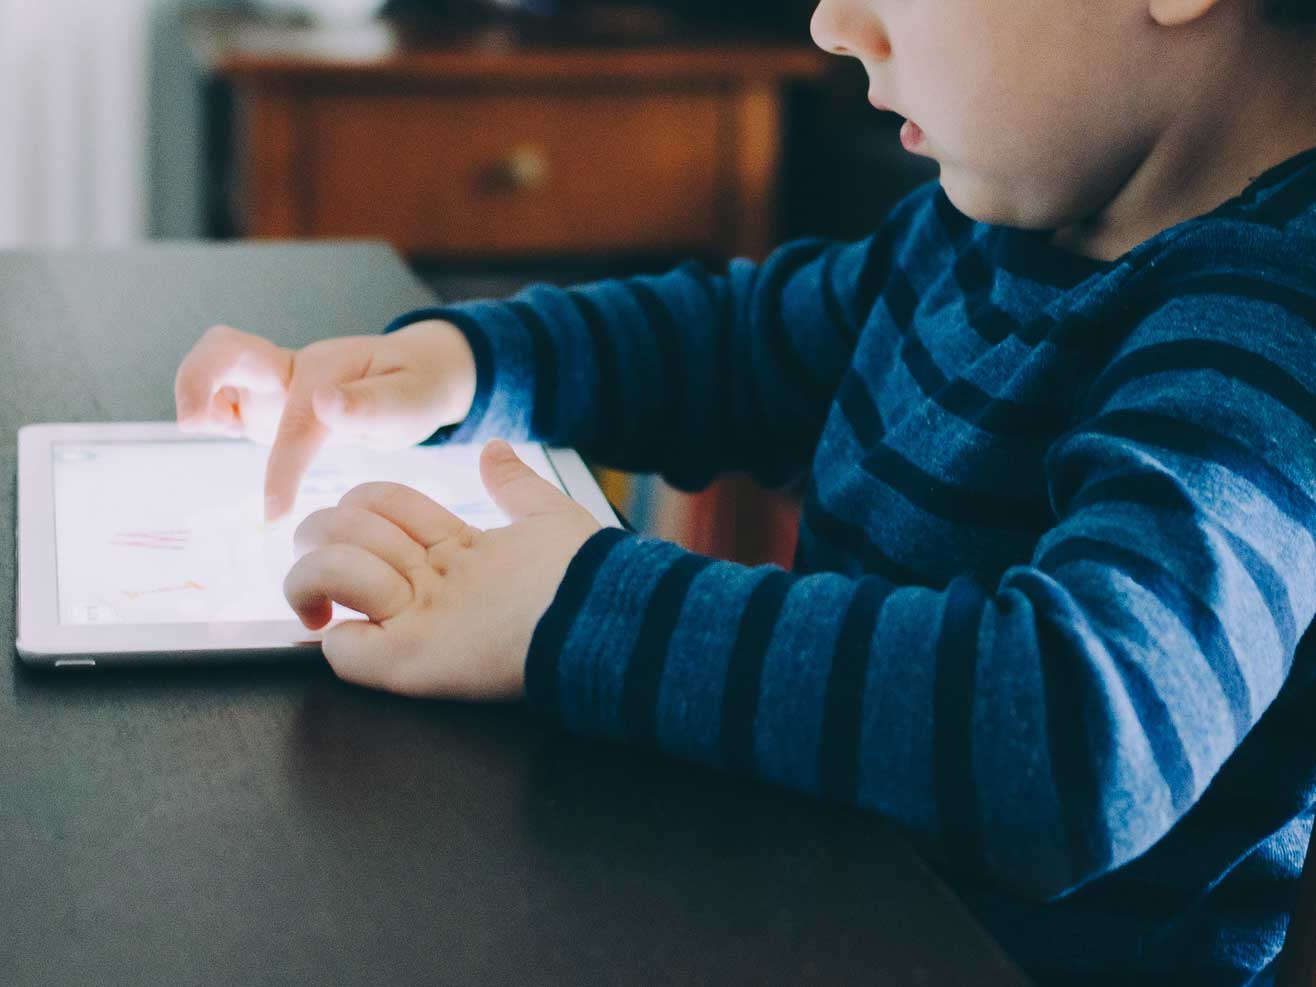 Kid playing on tablet.